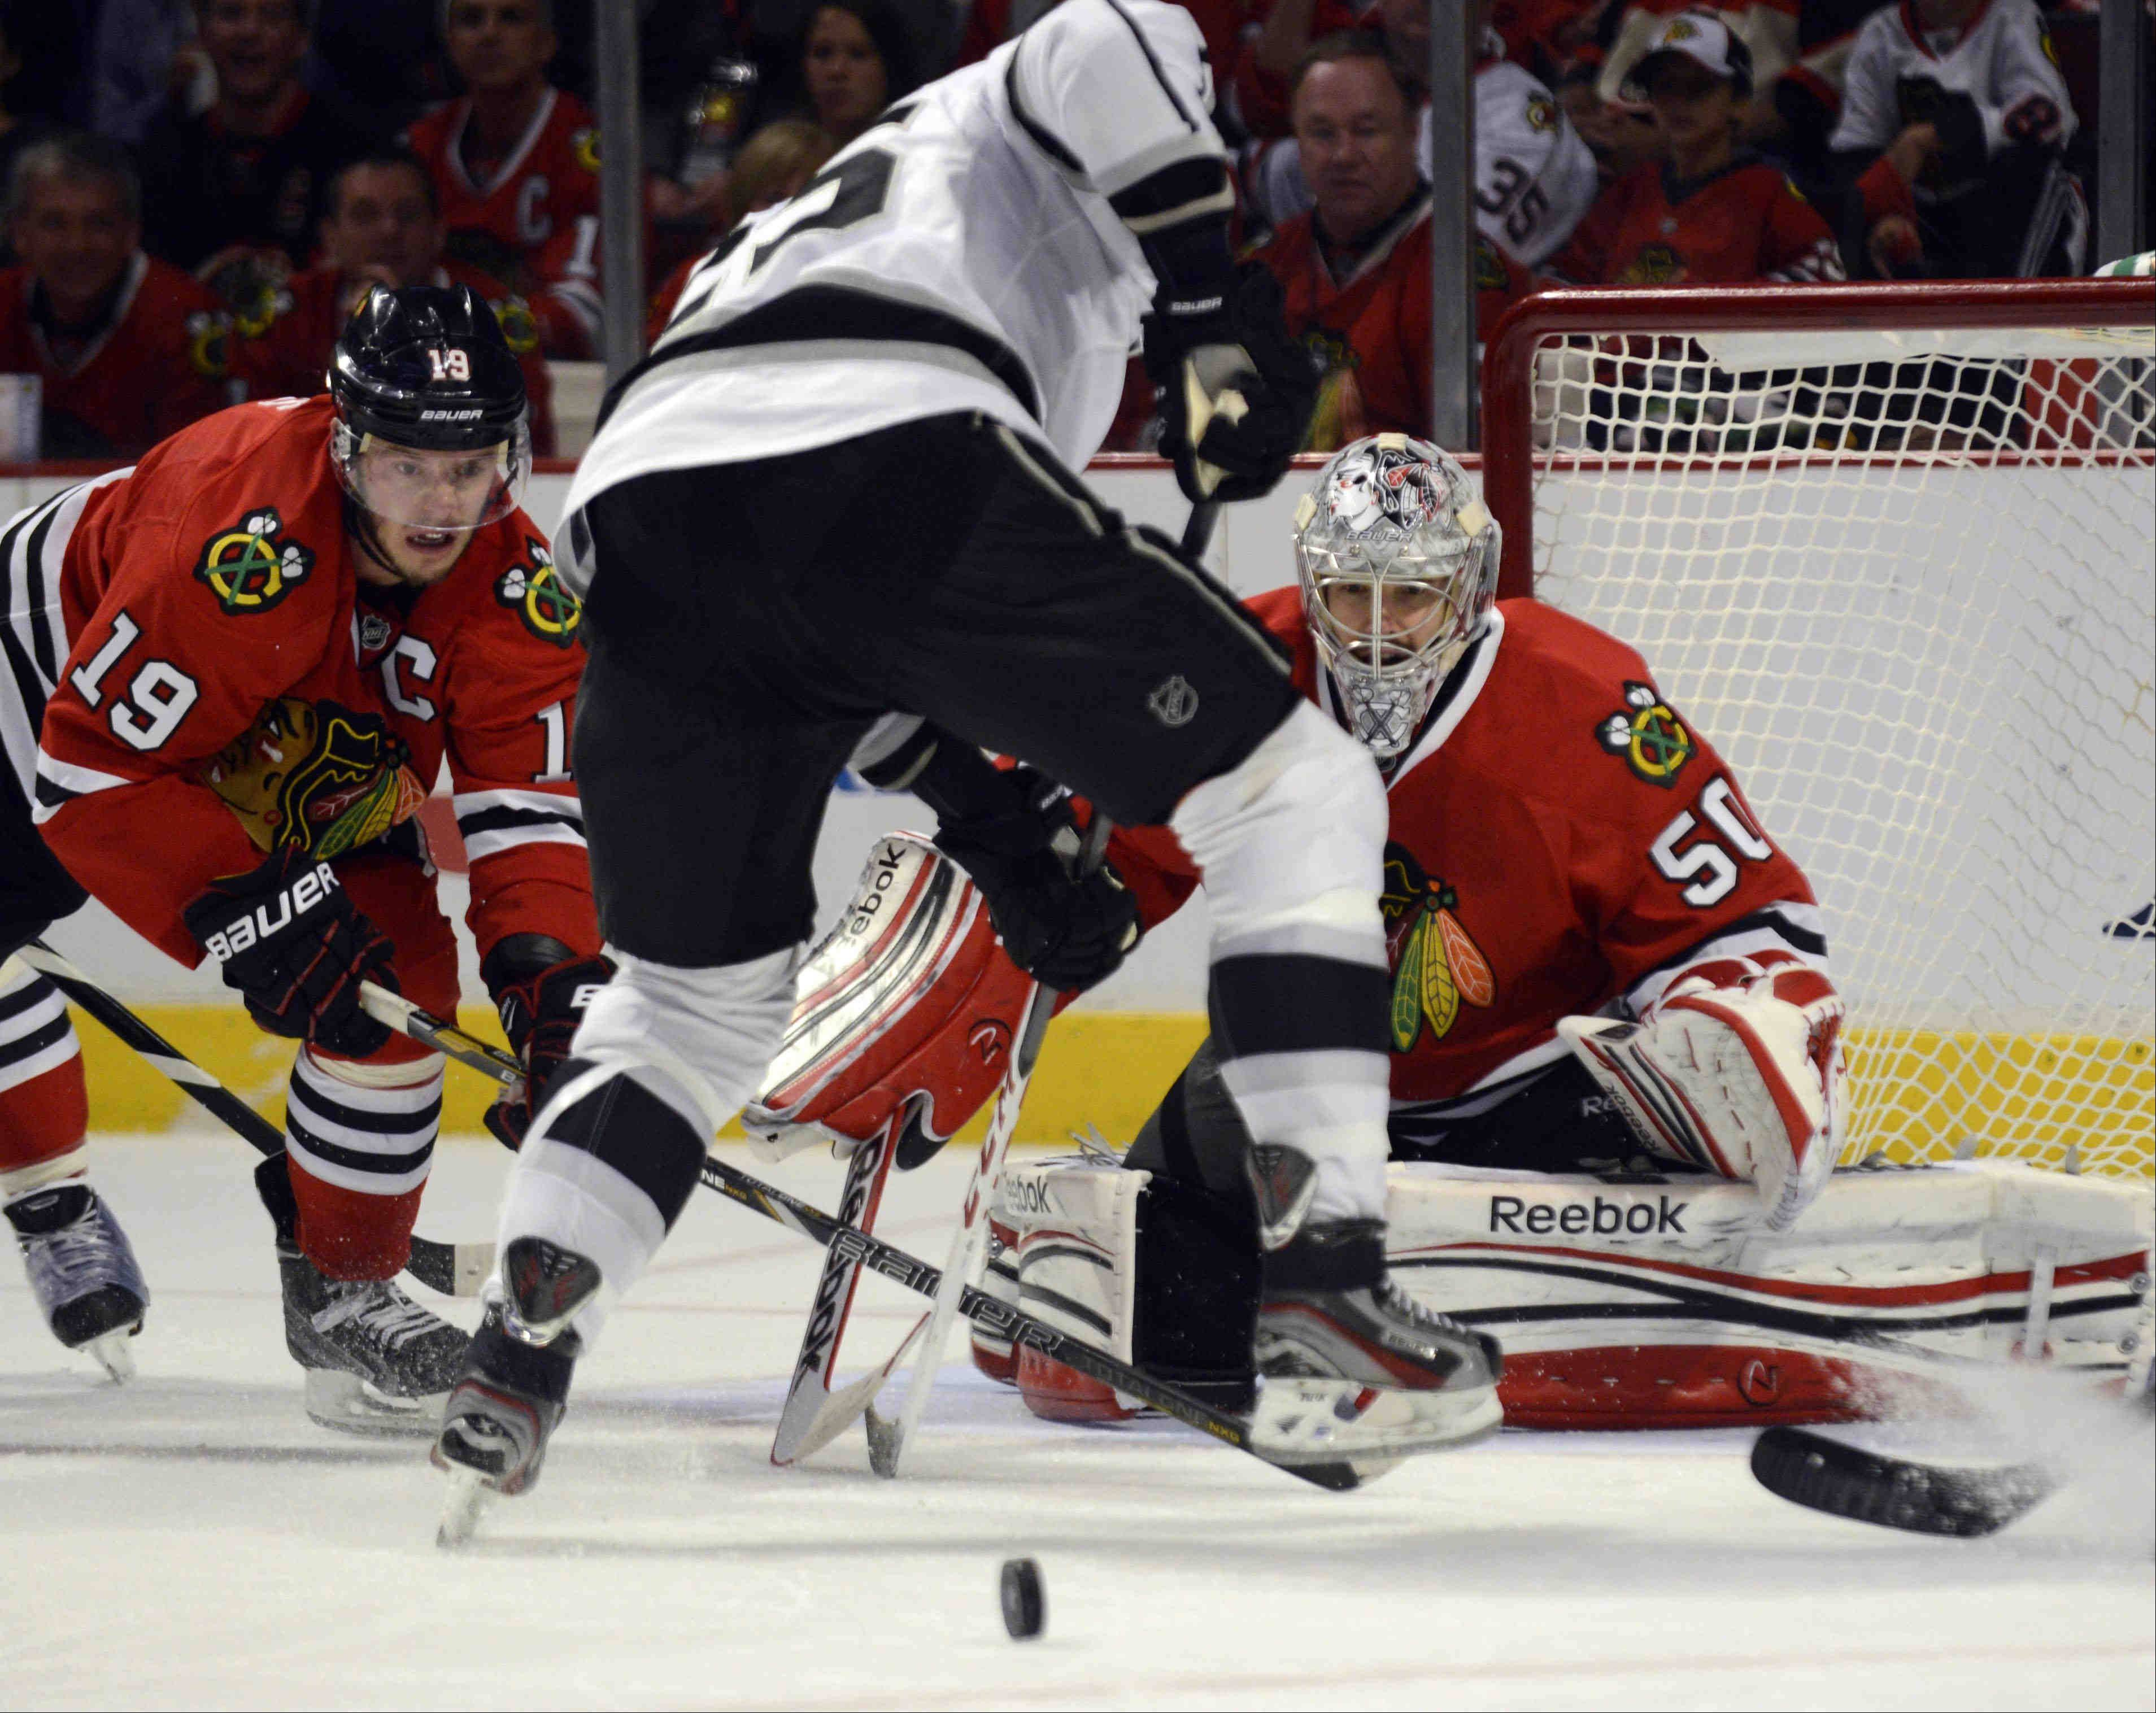 Chicago Blackhawks goalie Corey Crawford and teammate Jonathan Toews watch the puck roll away from Los Angeles Kings left wing Dustin Penner in the second period as he charged the net during Game 2 of the NHL Western Conference finals at the United Center Sunday night in Chicago.